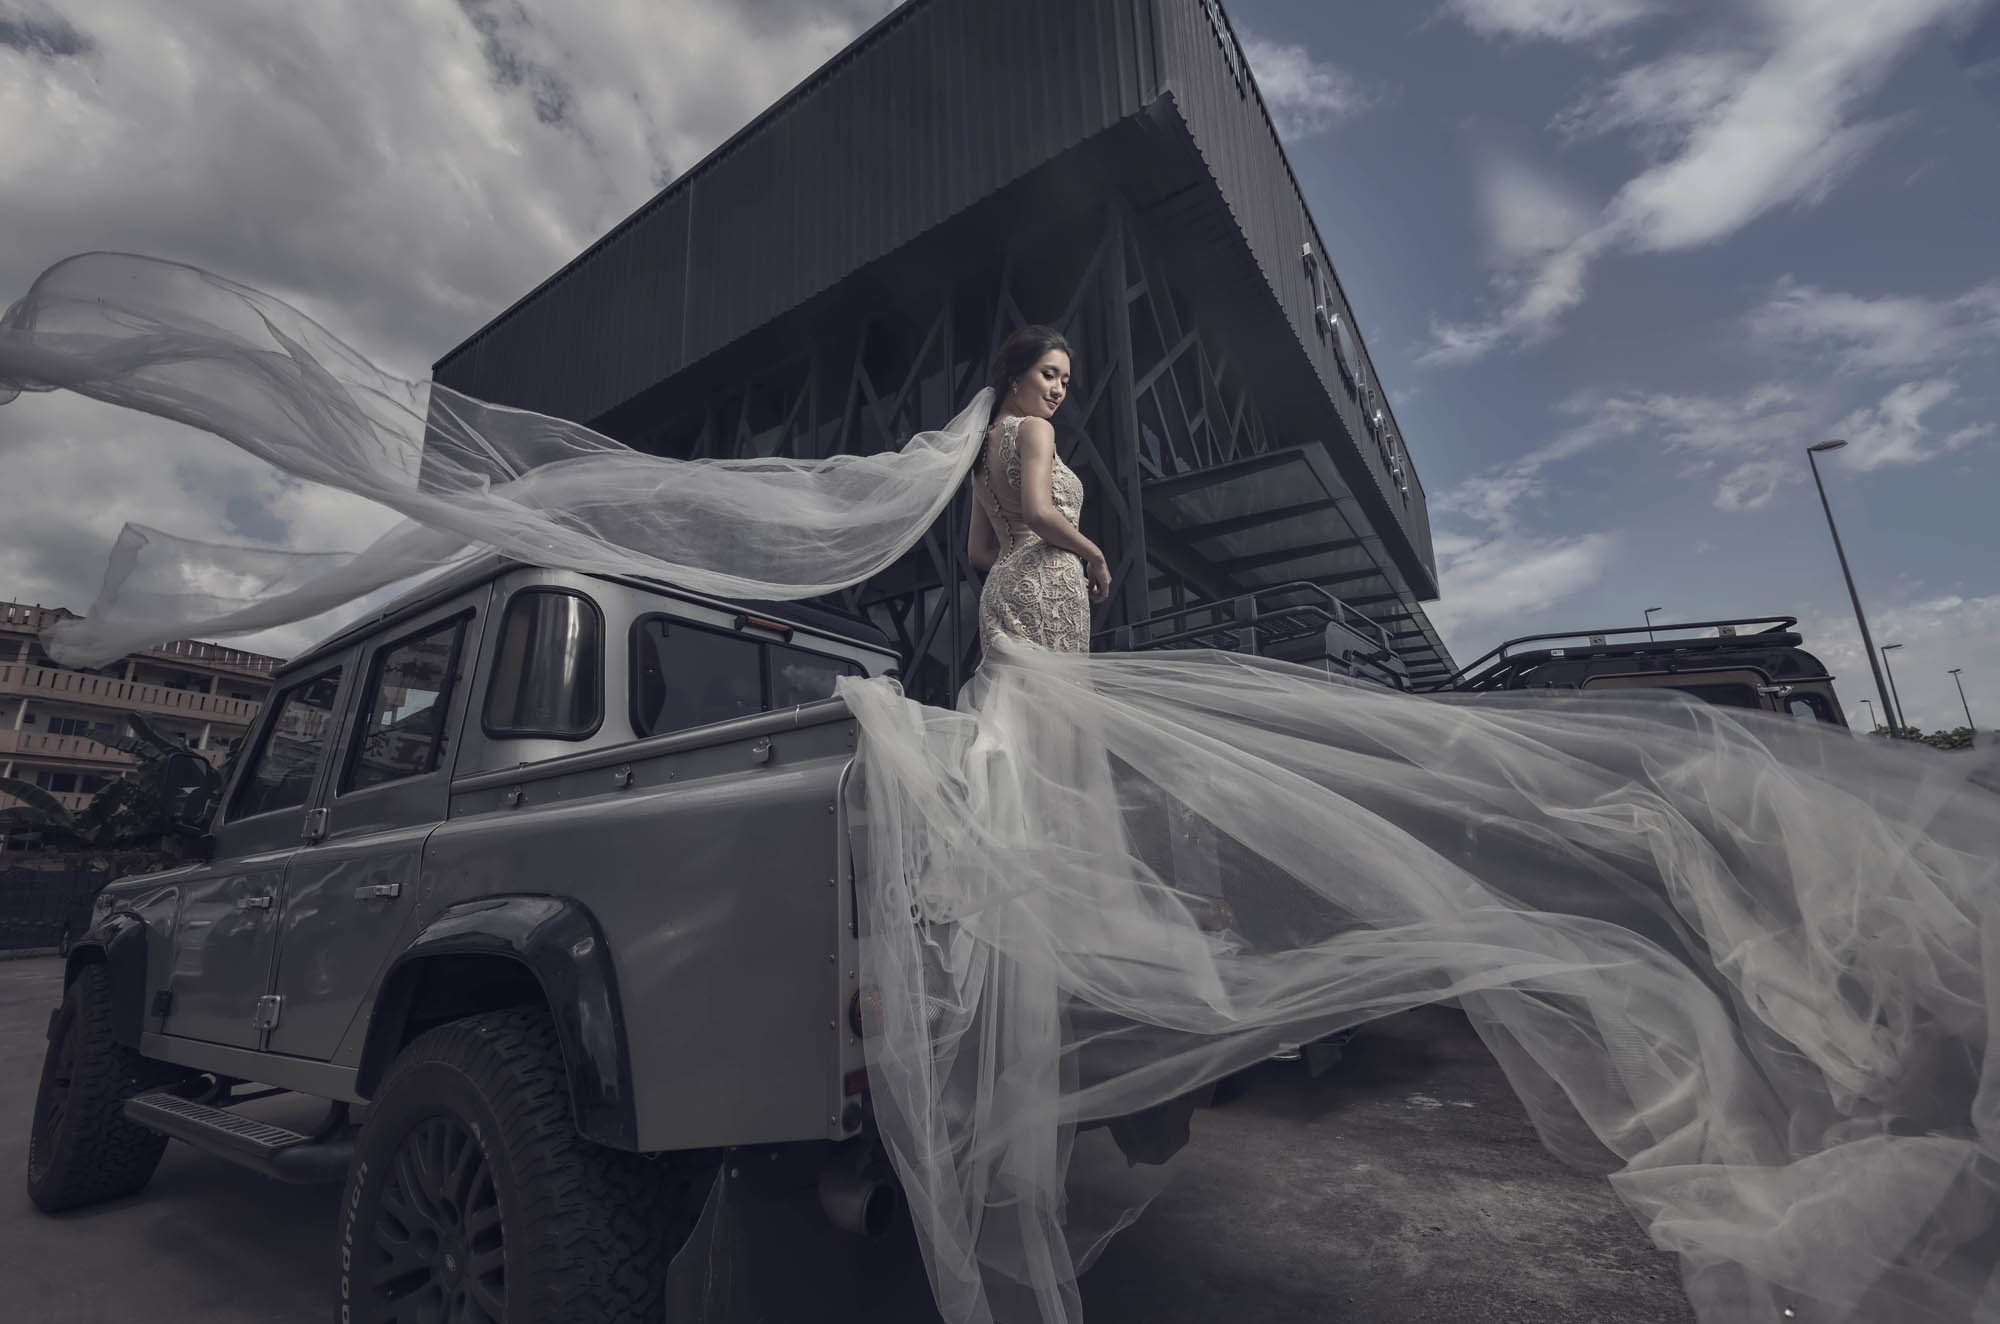 Bride with dramatic flowing veil and train standing on truck, by CM Leung